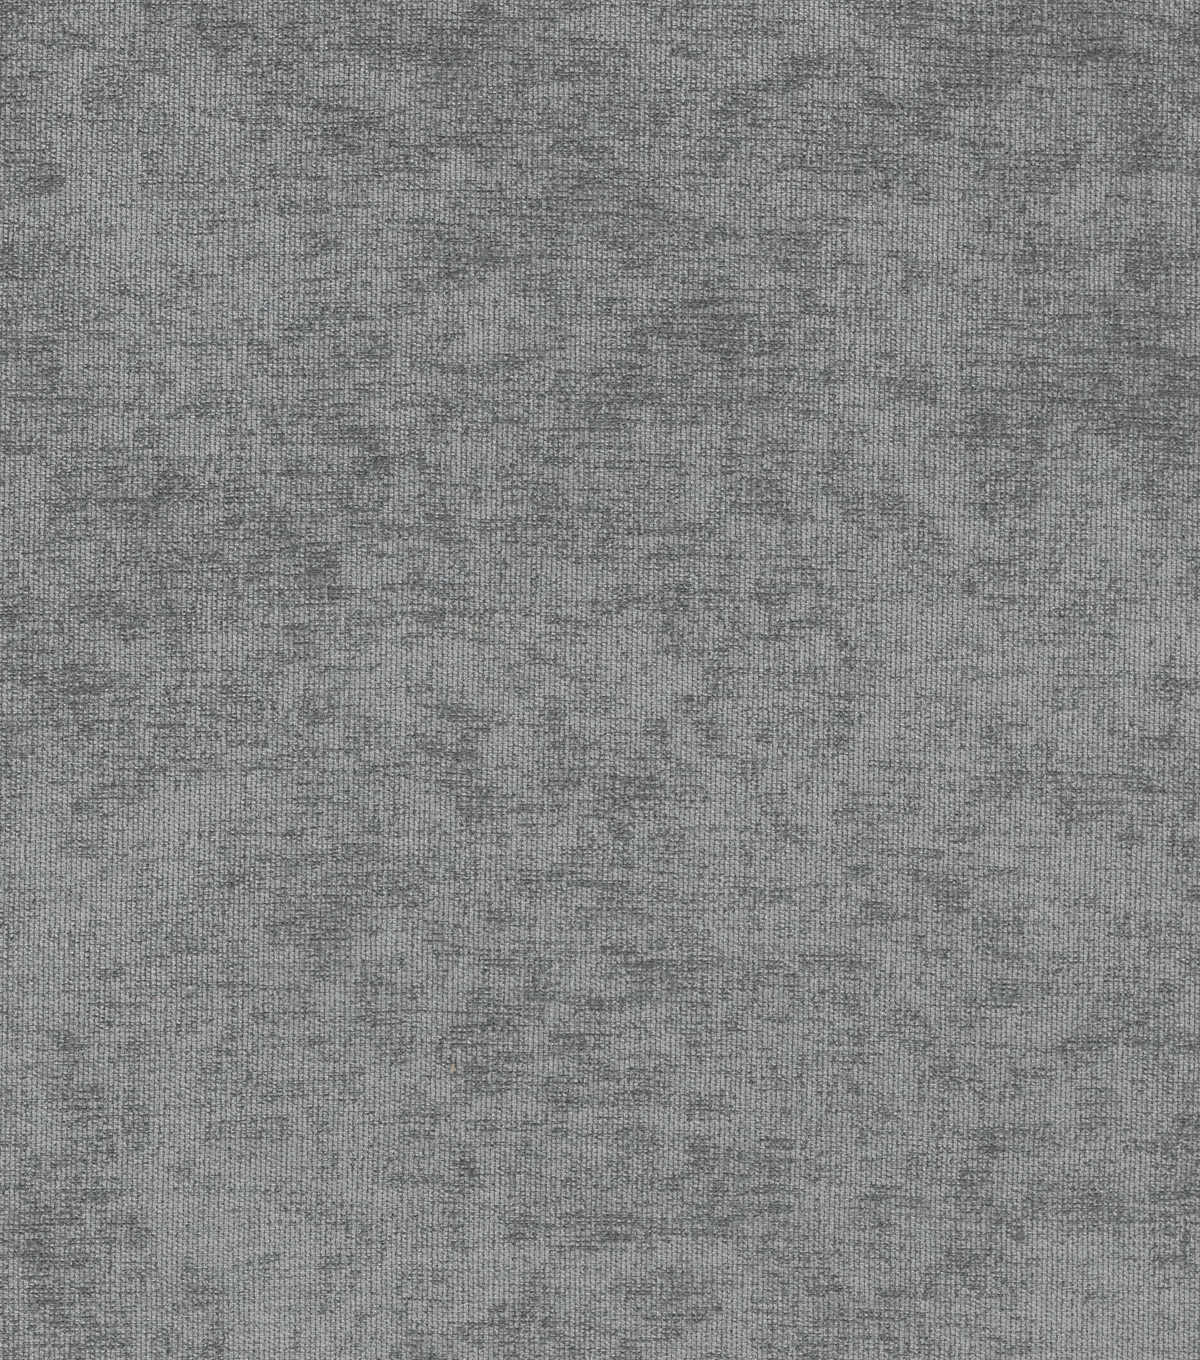 Home Decor Upholstery Fabric 54\u0022- Crypyon Shelby Pelican